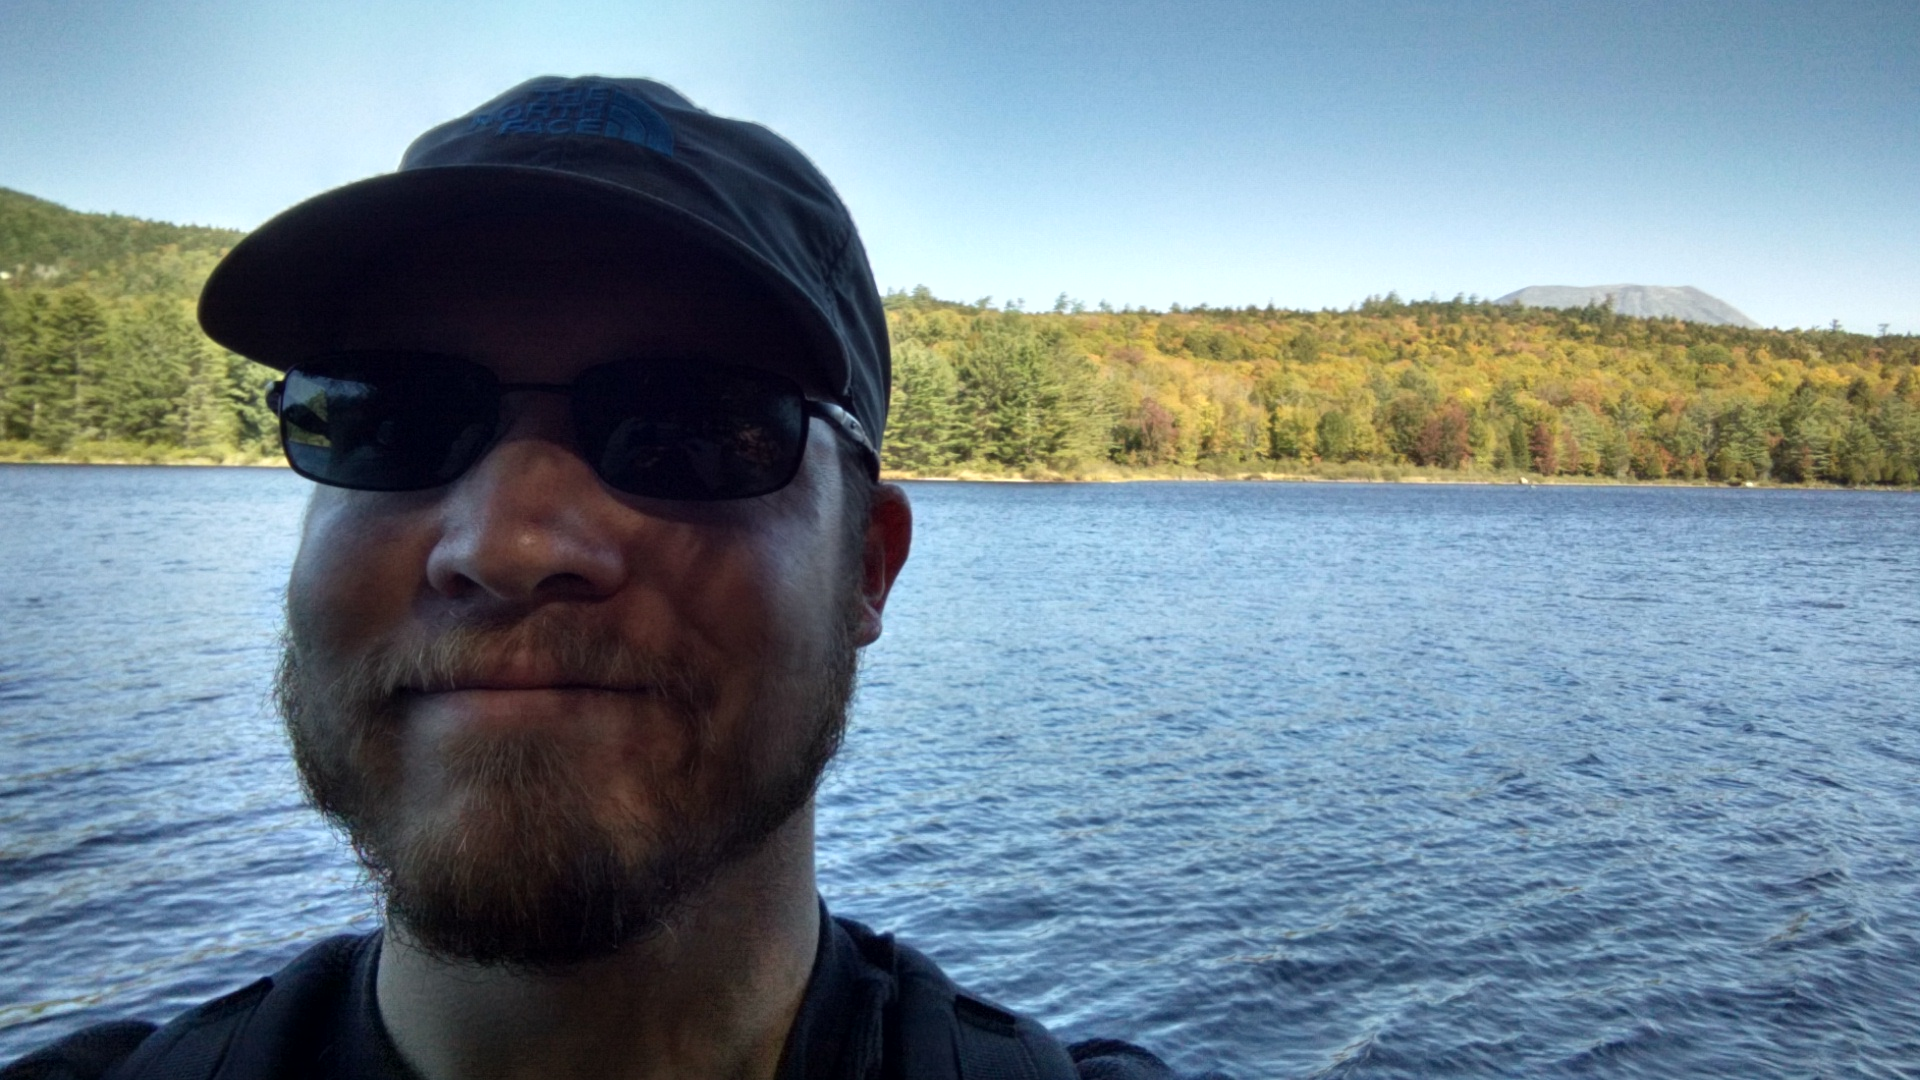 My selfie game is still a work in progress, but you can kind of see Katahdin back there.